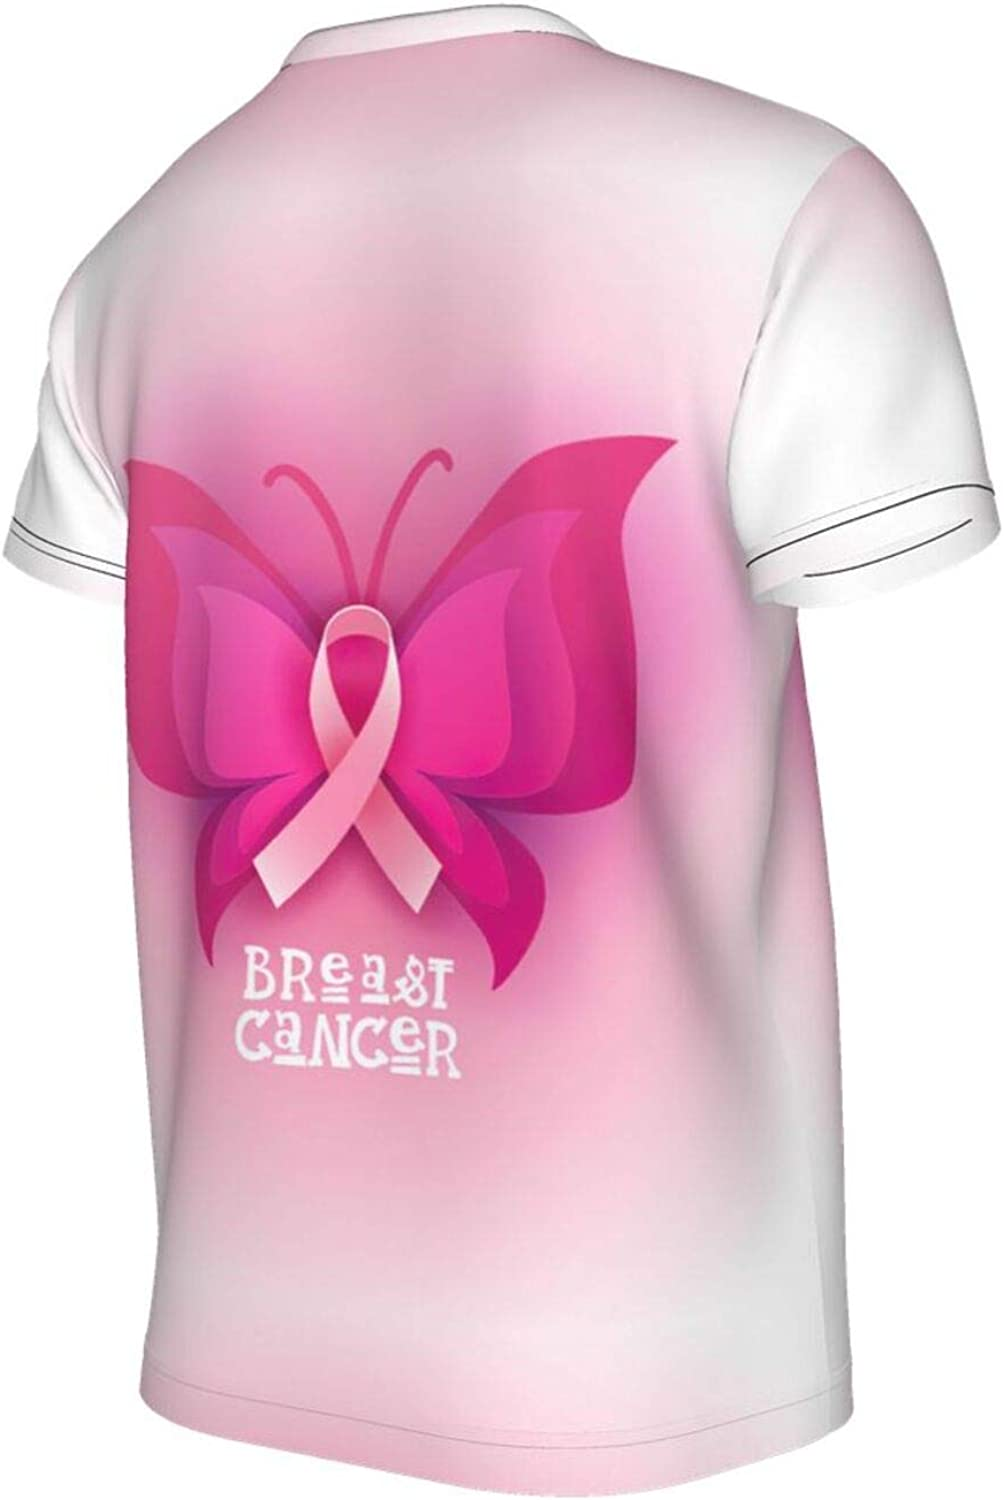 Pink Ribbon Butterfly Breast Cancer Awareness Boys' Girls' T-Shirts,Thletic Performance Short Sleeve Graphic Sports Tees